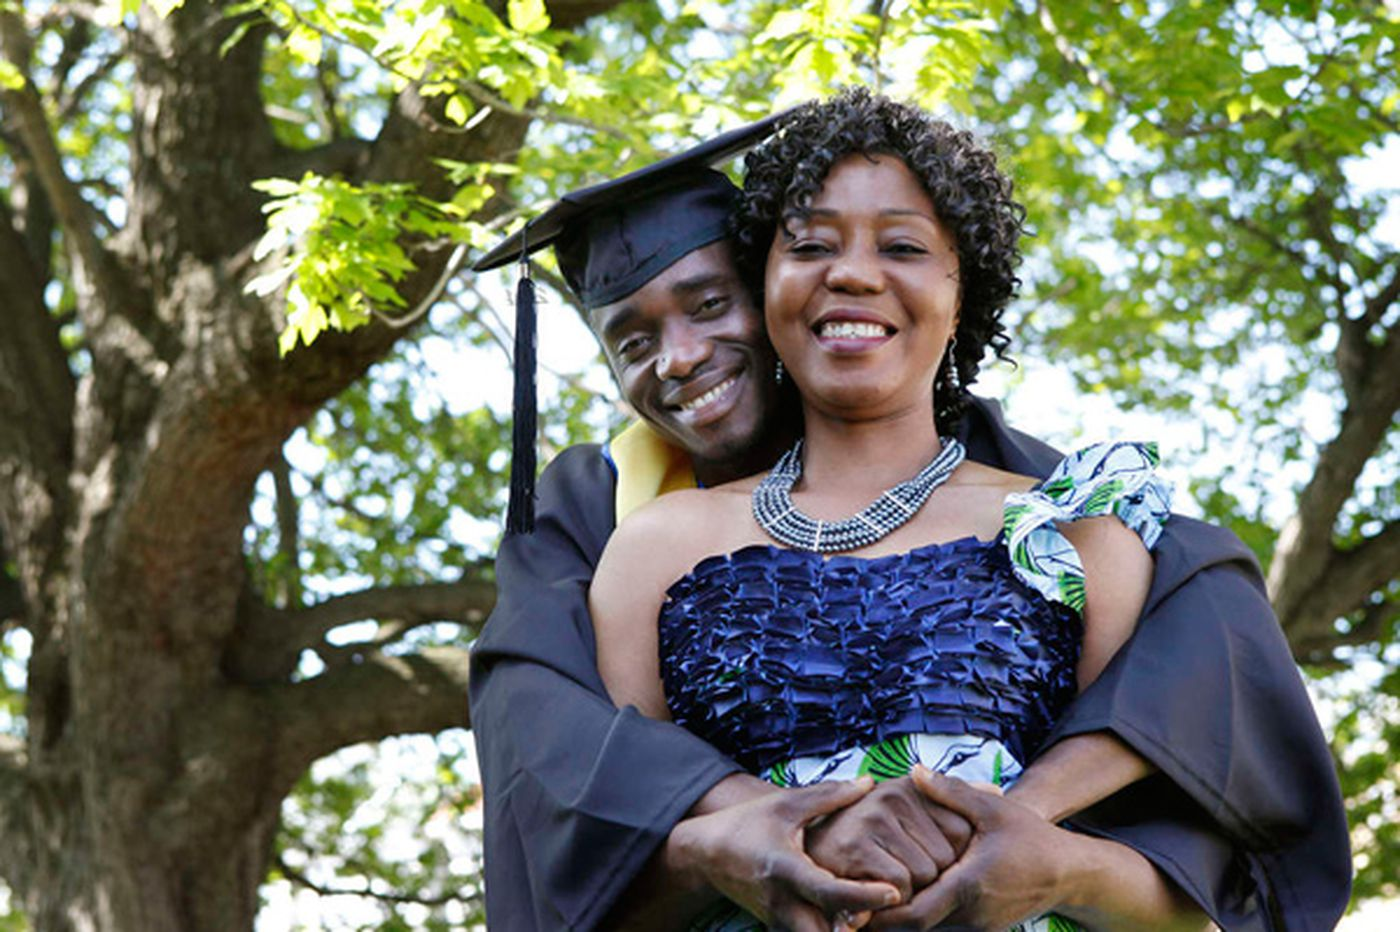 Liberian immigrant, about to graduate from Cheyney, wants to go back